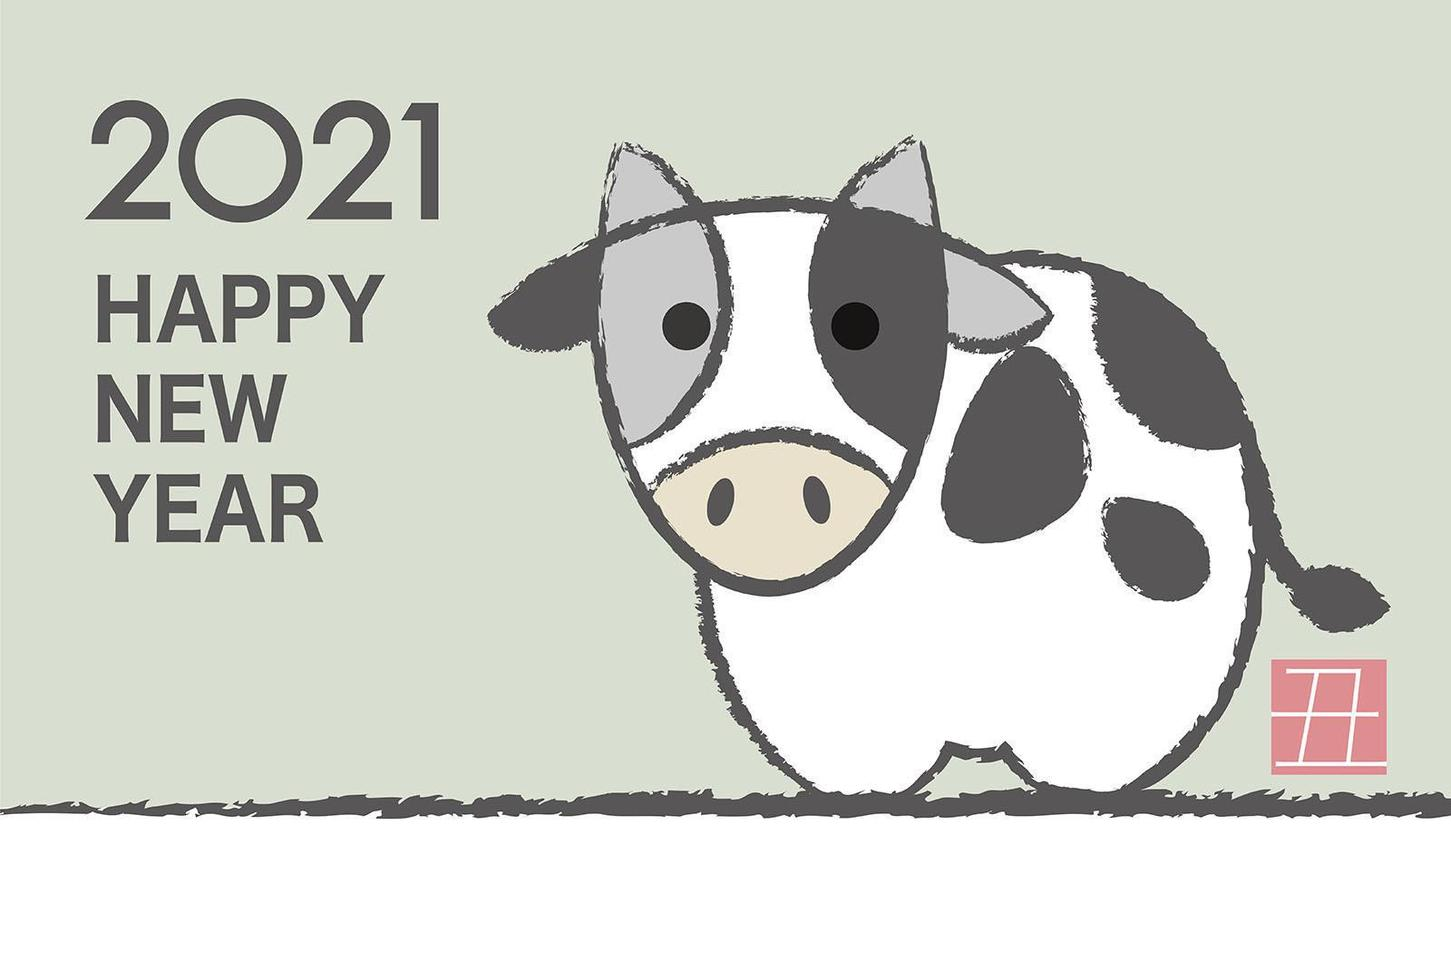 2021 Year Of The Ox New Years Greeting Card Download Free Vectors Clipart Graphics Vector Art